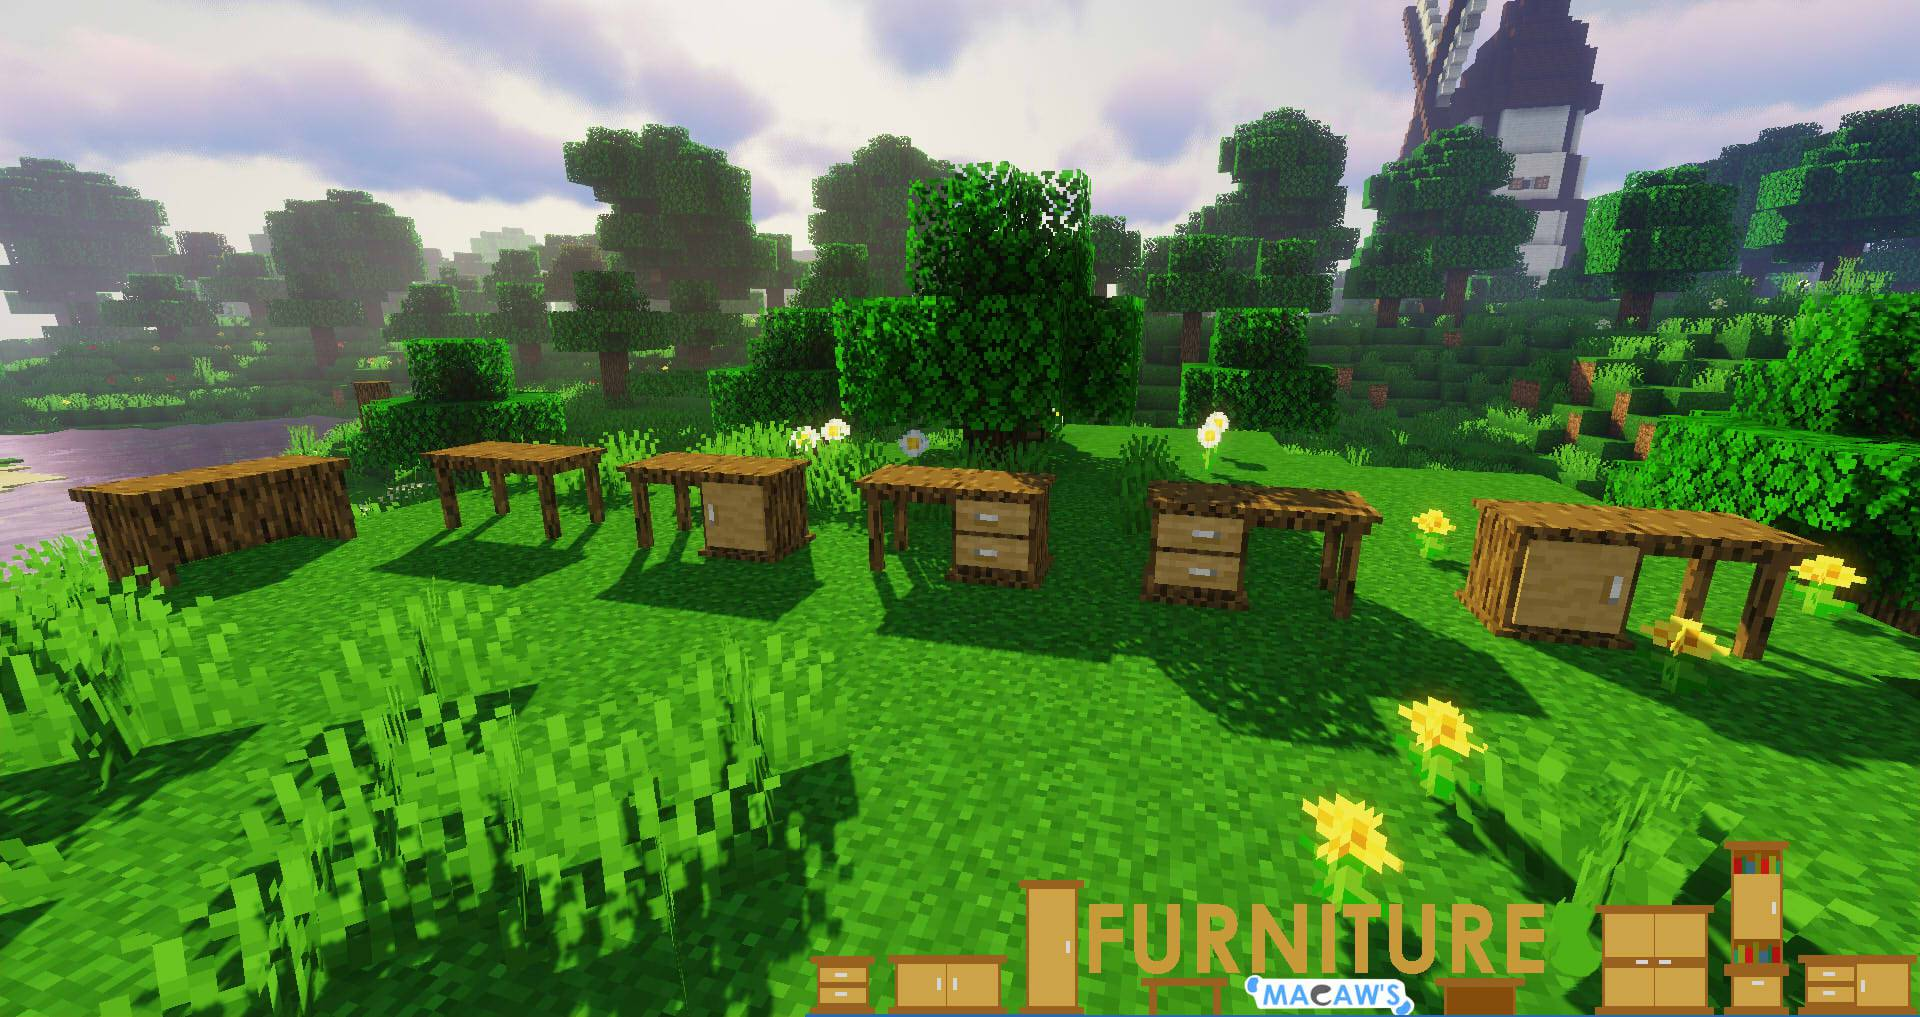 Macaw_s Furniture mod for minecraft 28